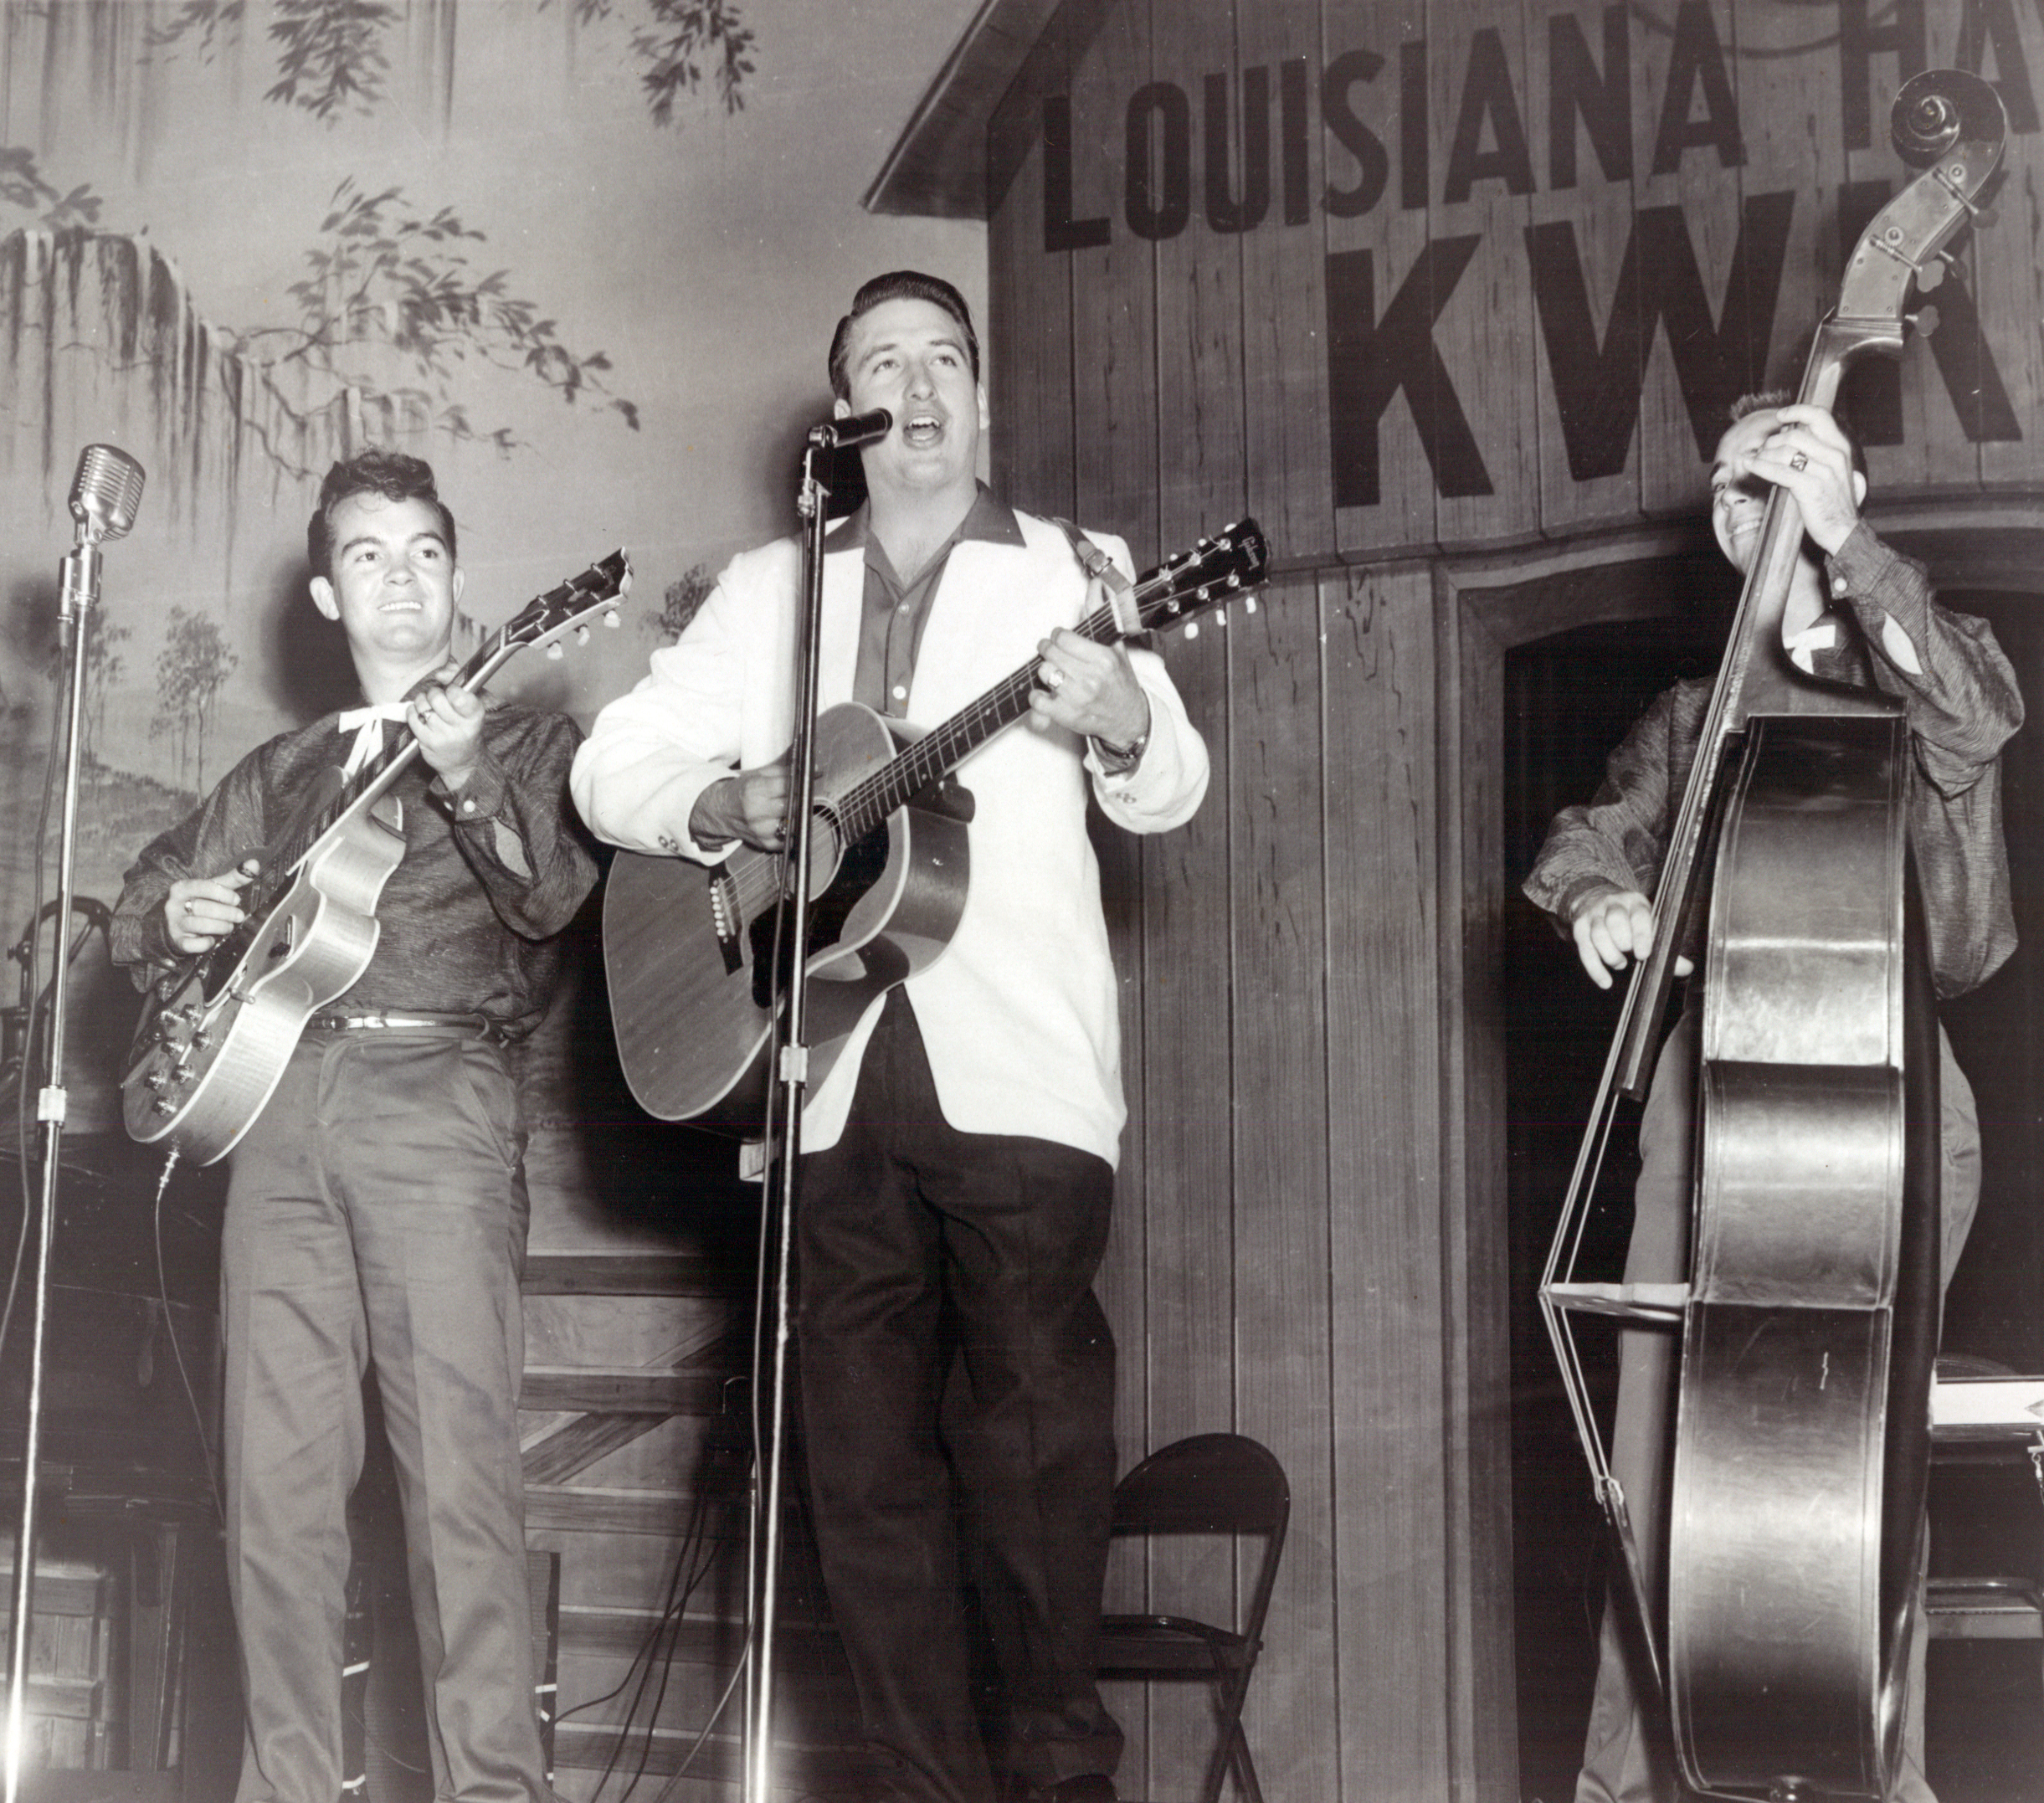 Onstage at the Louisiana Hayride